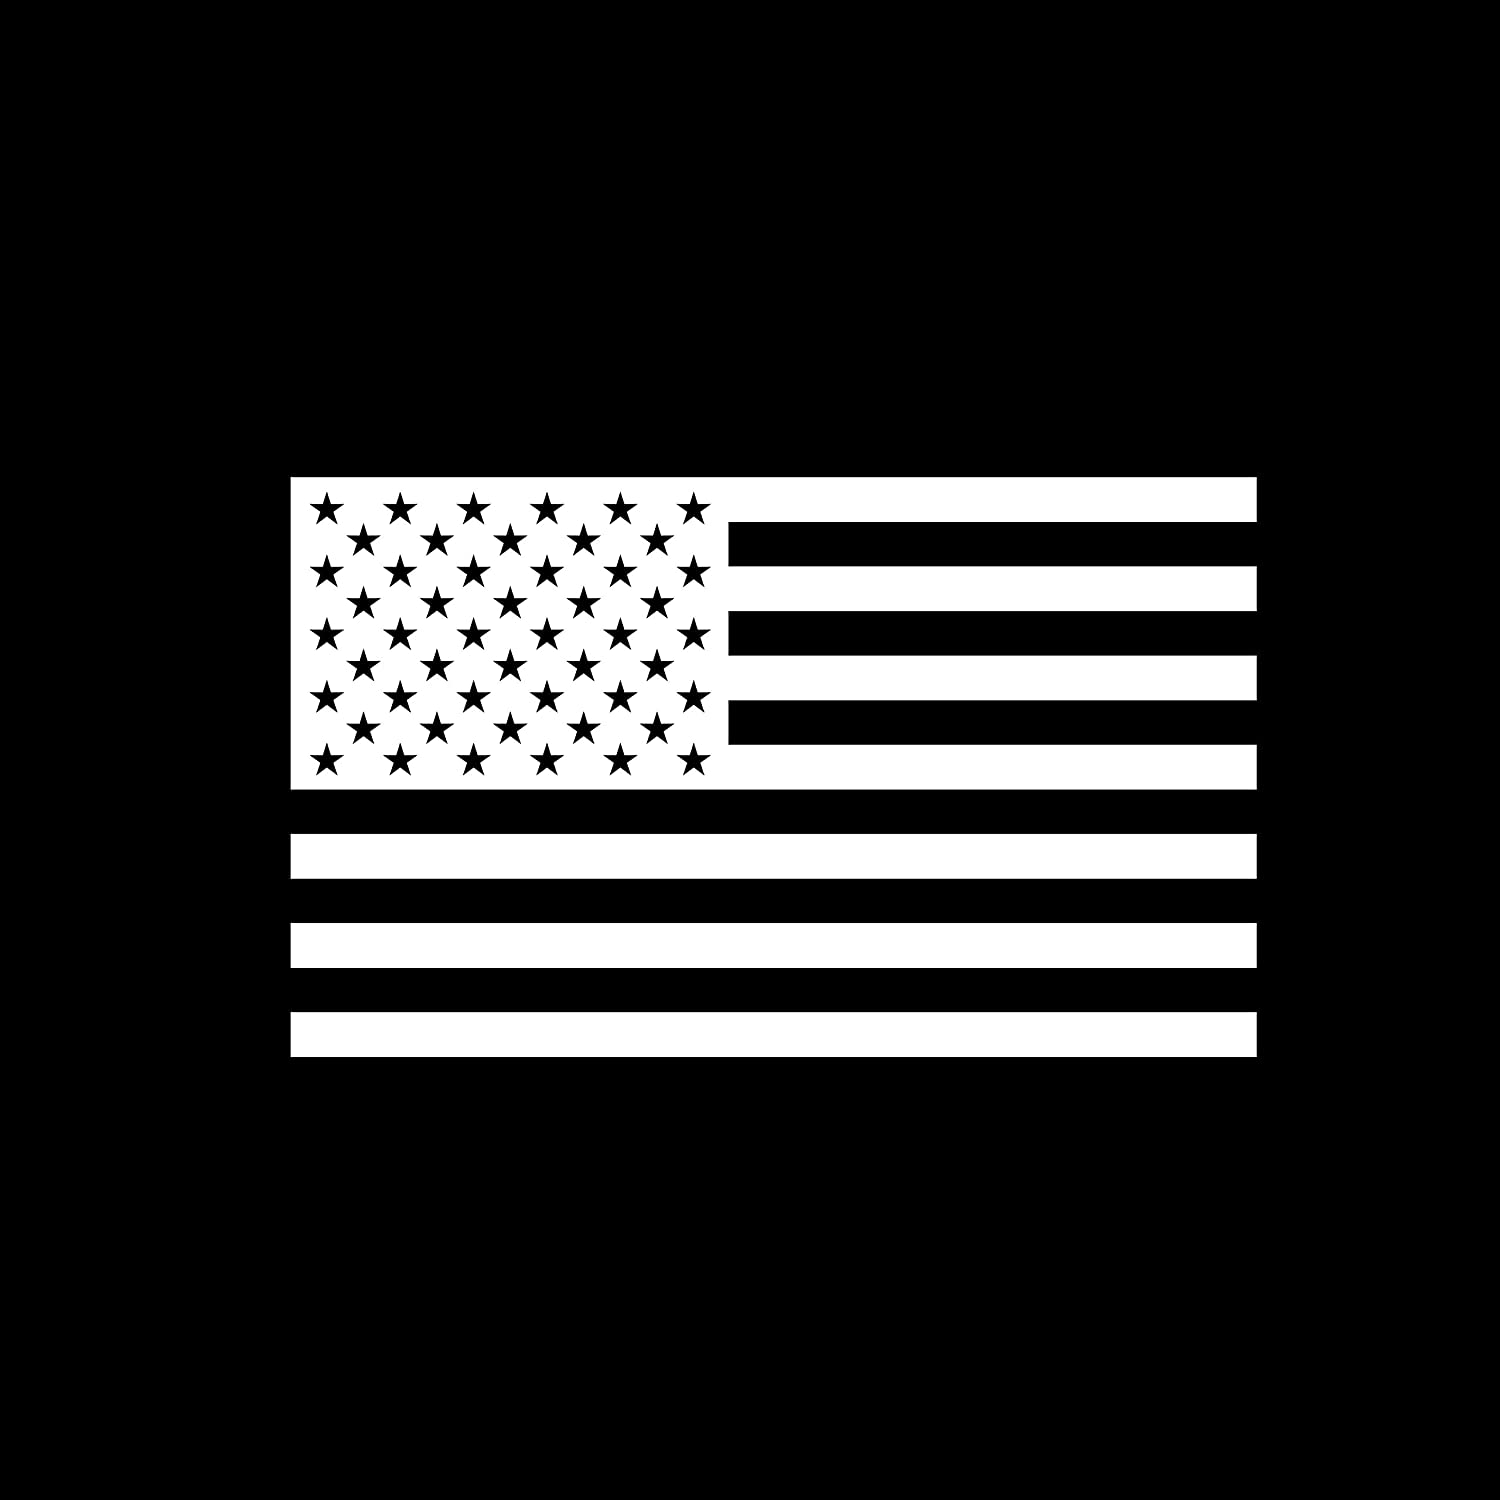 AGL American US Flag Vinyl Decal Sticker for Laptop/Car/Truck/Jeep/Window/Bumper (7.5 in x 4.5 in, White Color)